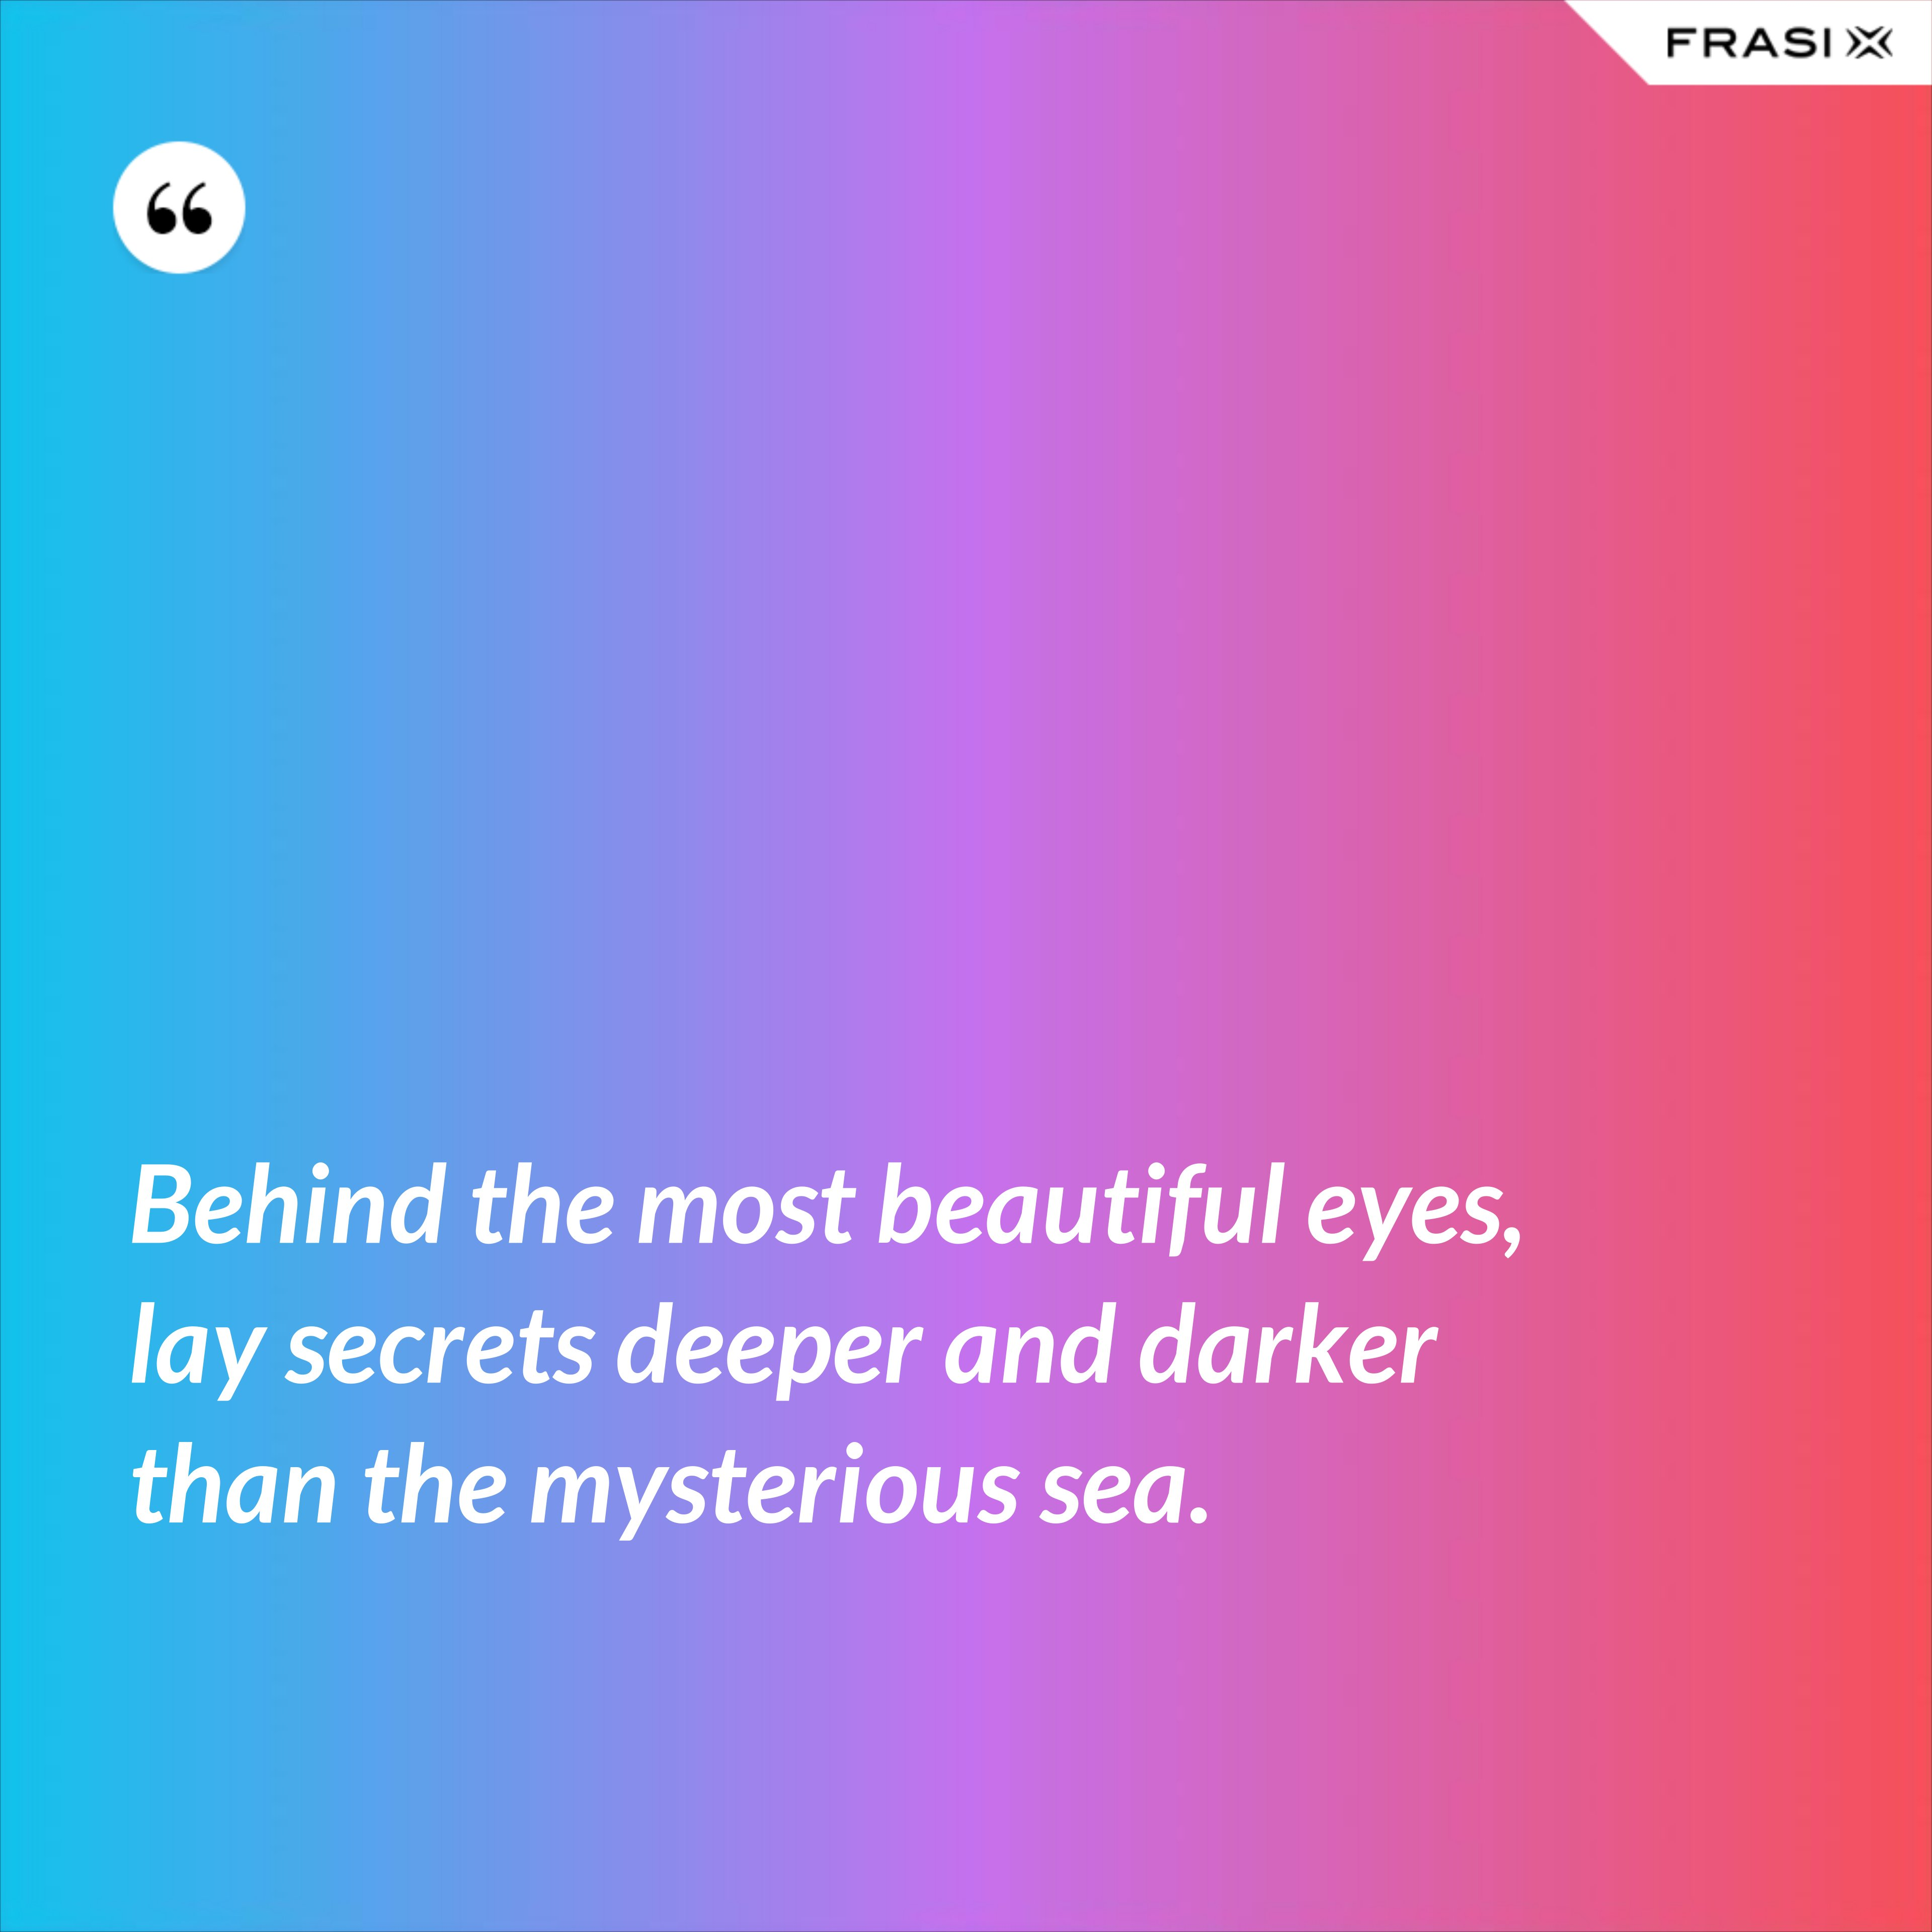 Behind the most beautiful eyes, lay secrets deeper and darker than the mysterious sea. - Anonimo